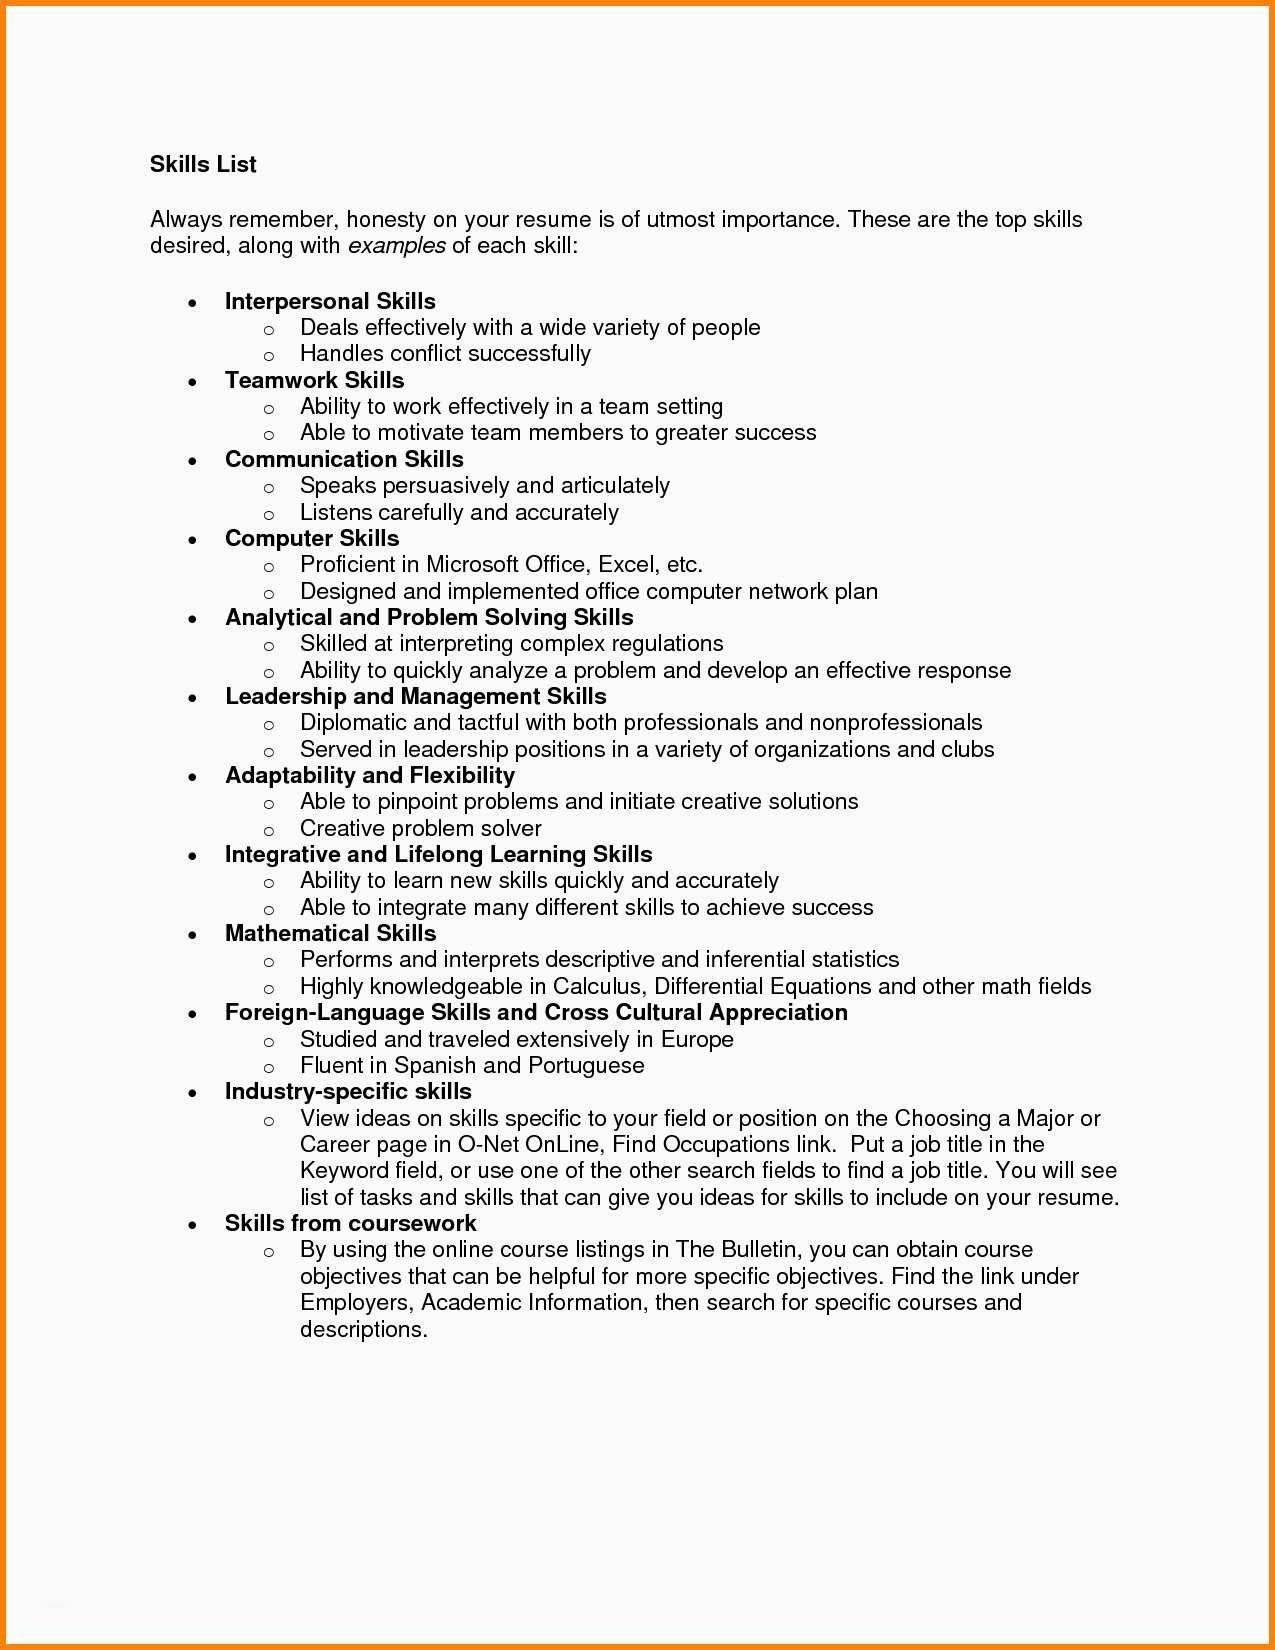 What Is The Resume Tips Skills For A Good Resume Resume Skills List List Of Skills Resume Skills